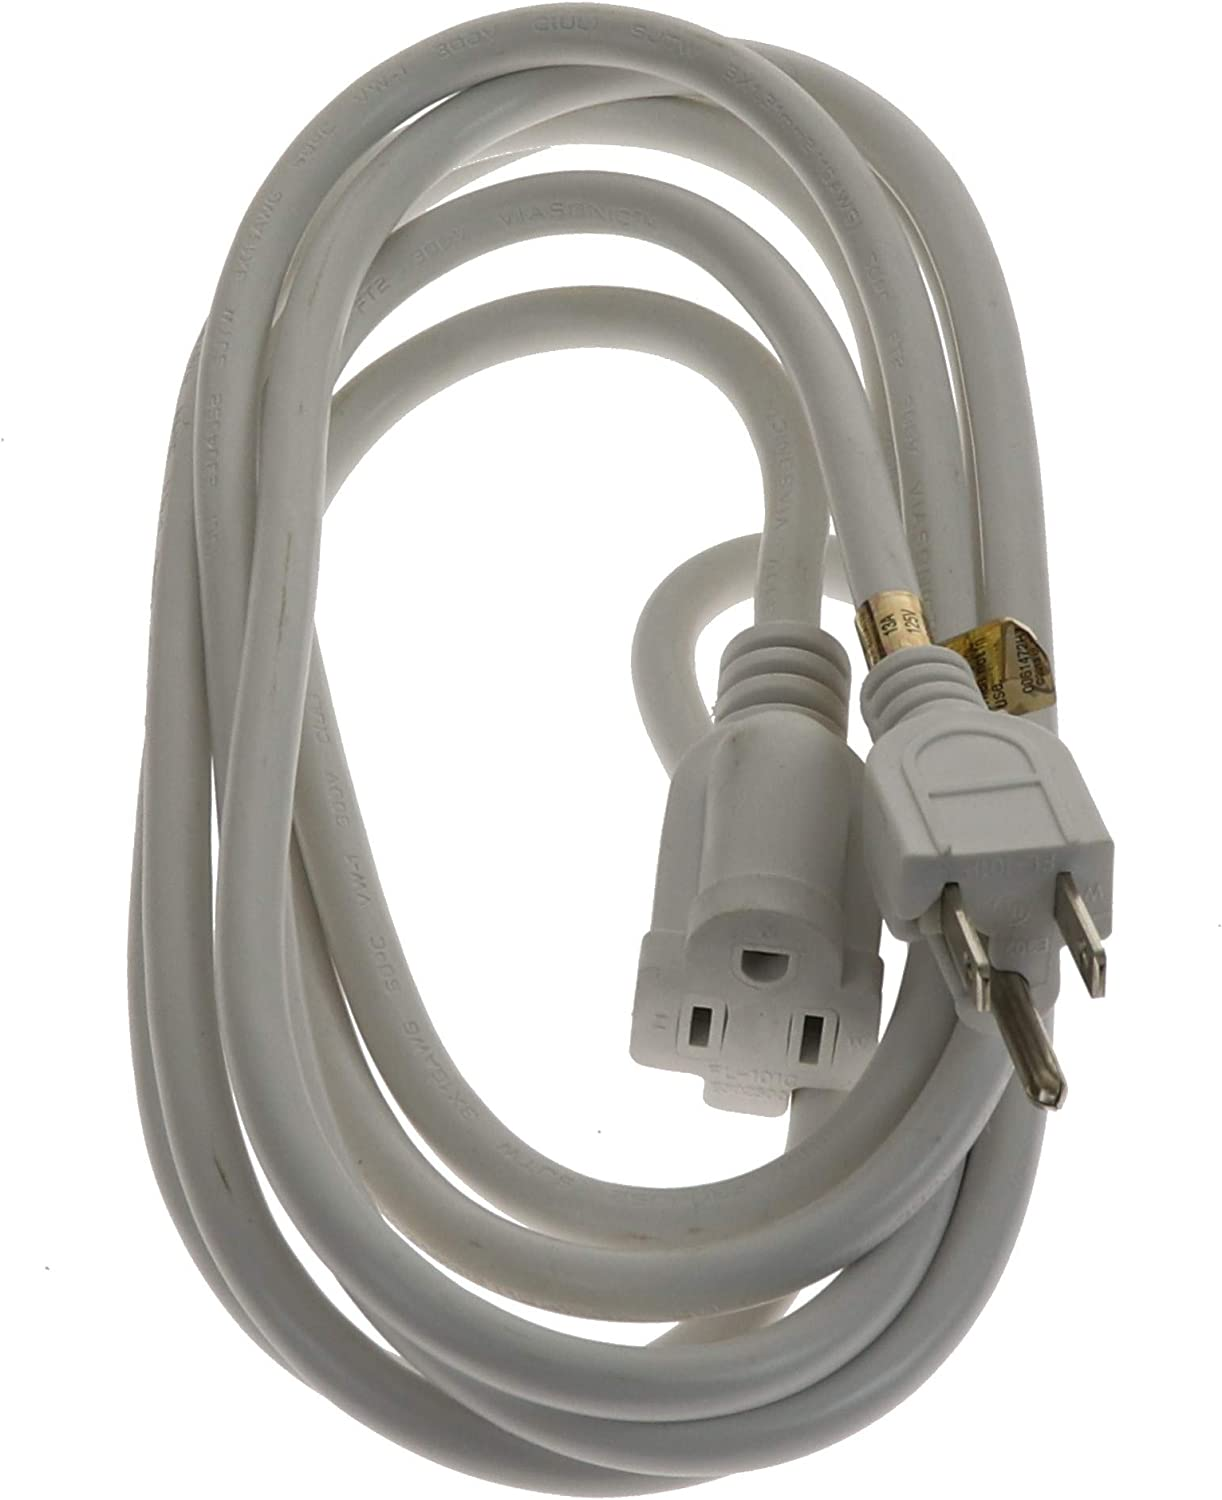 3-Prong UL-Listed by Unity 10FT 16 Gauge General Purpose 2, White Heavy Duty /& Durable Multi-Pack Viasonic Outdoor Extension Cord